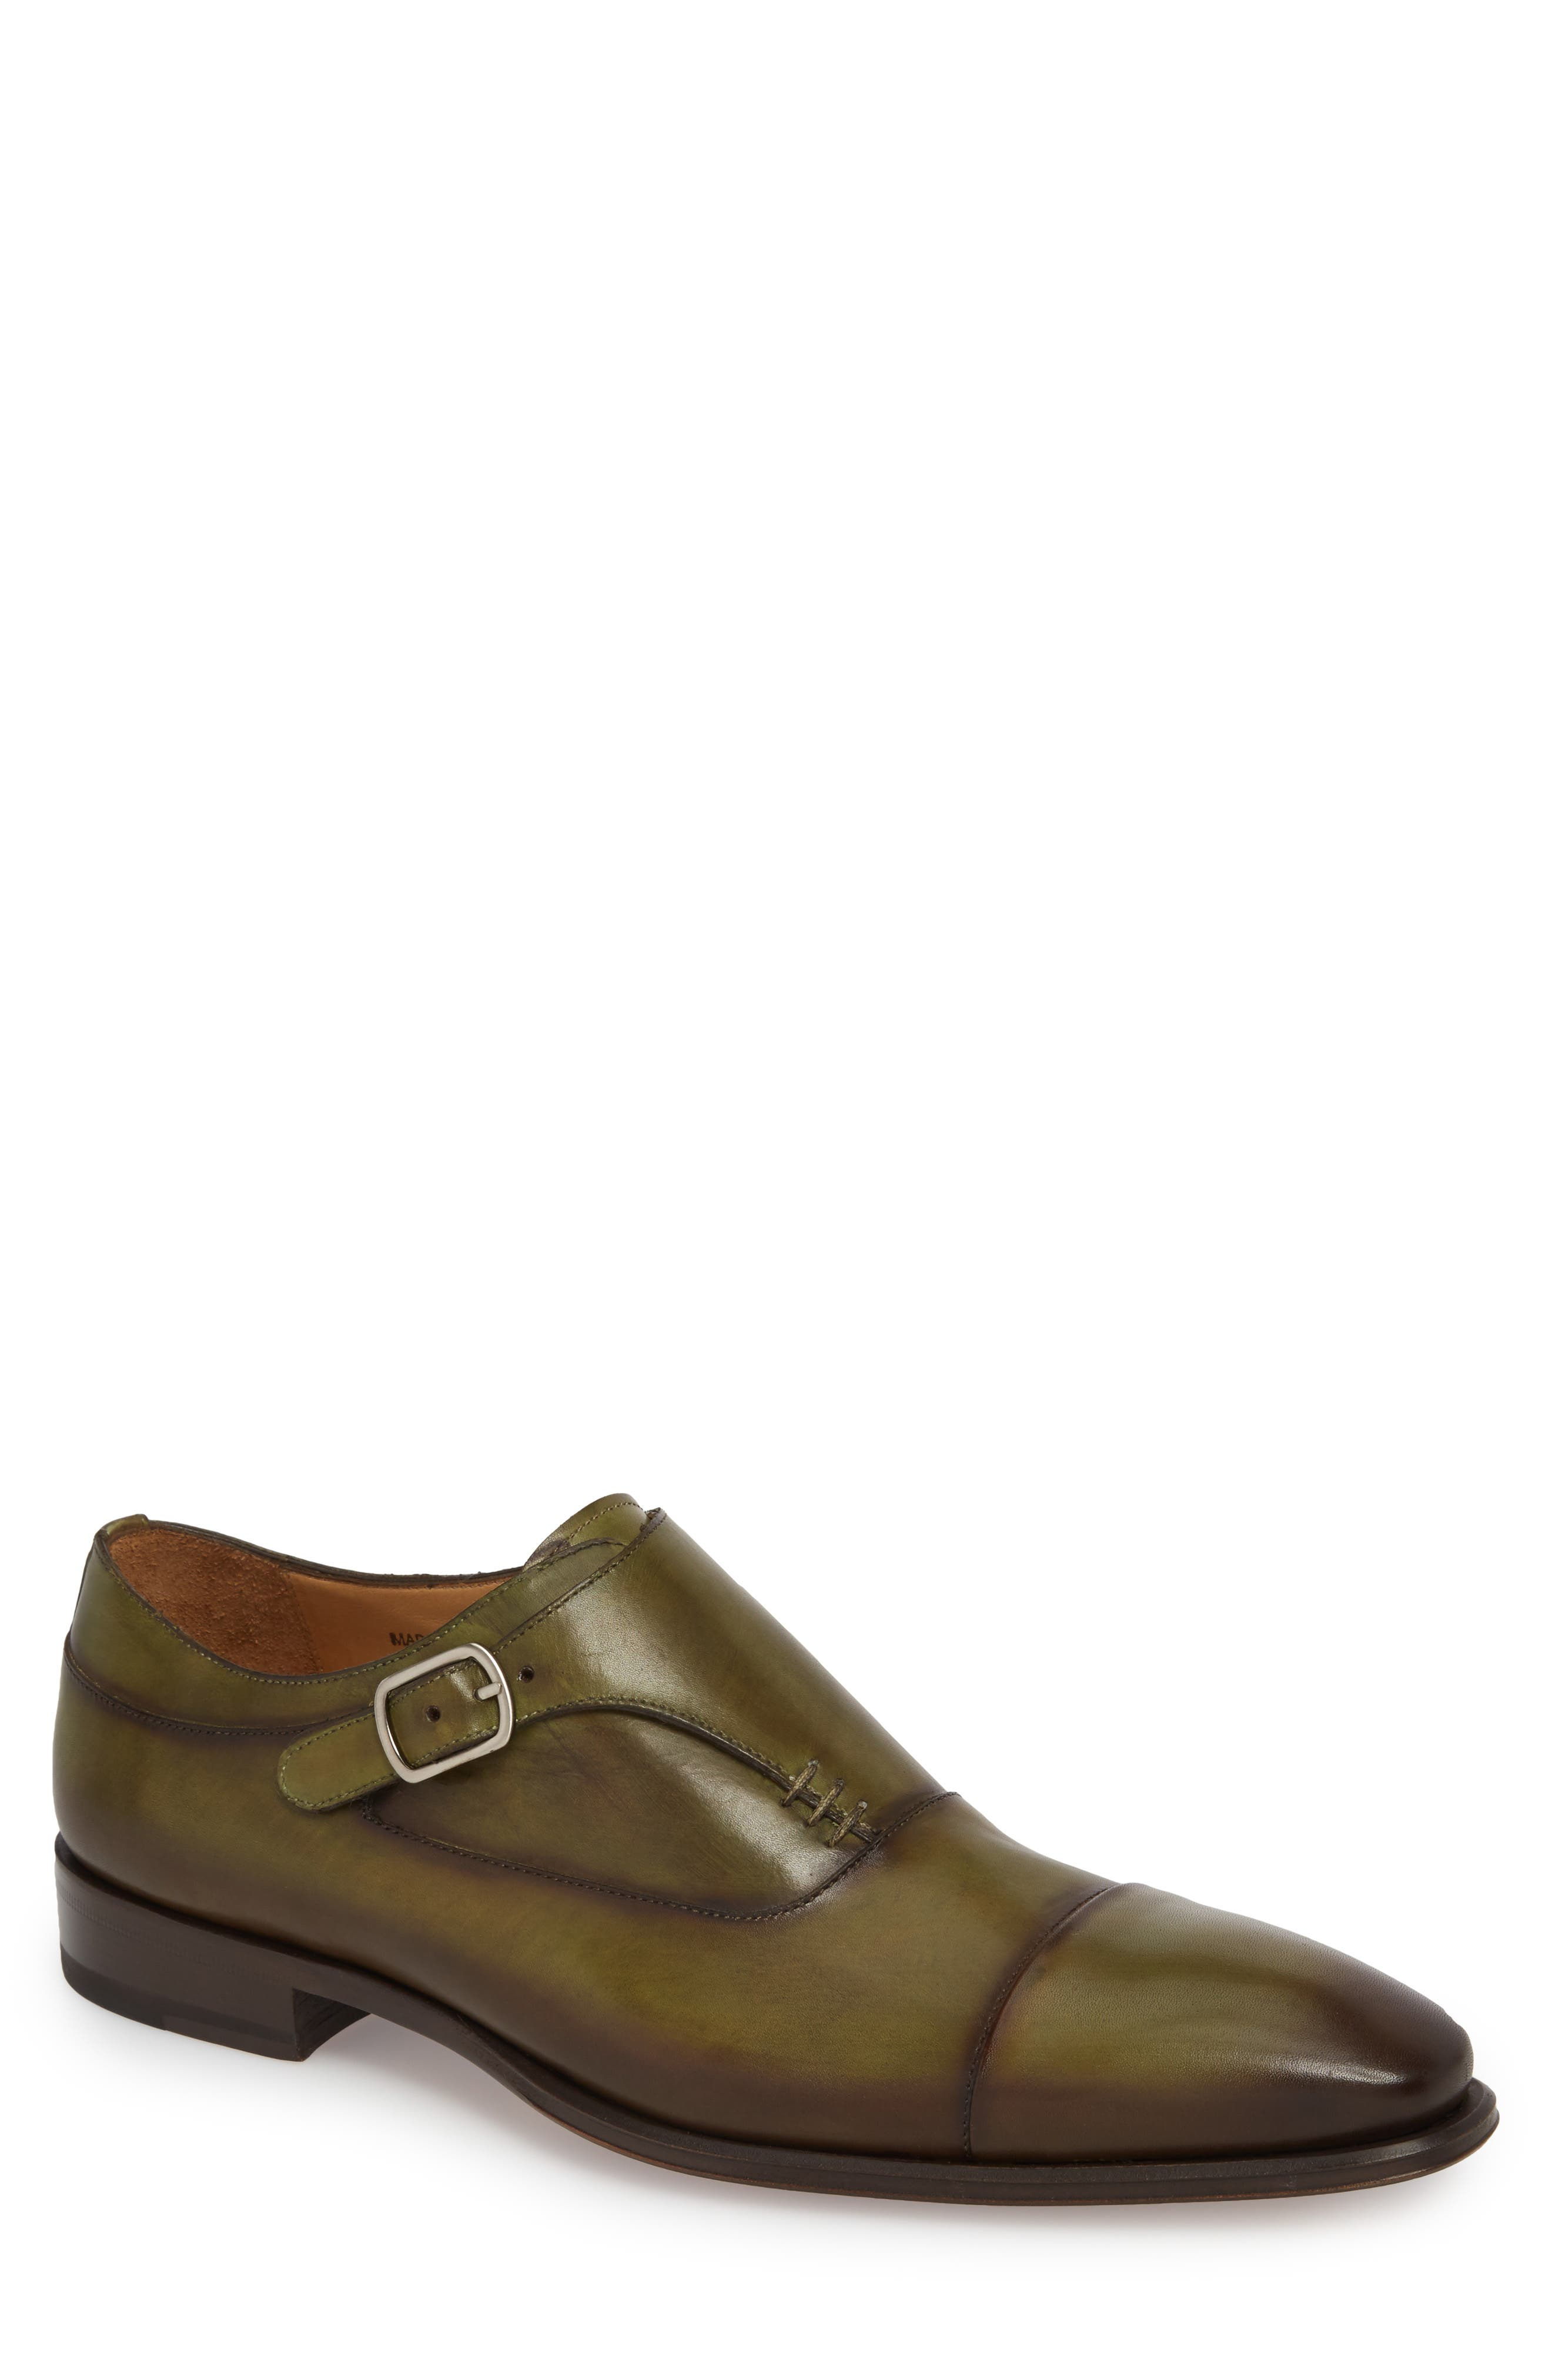 MEZLAN Cartago Monk Strap Cap Toe Oxford in Olive Leather